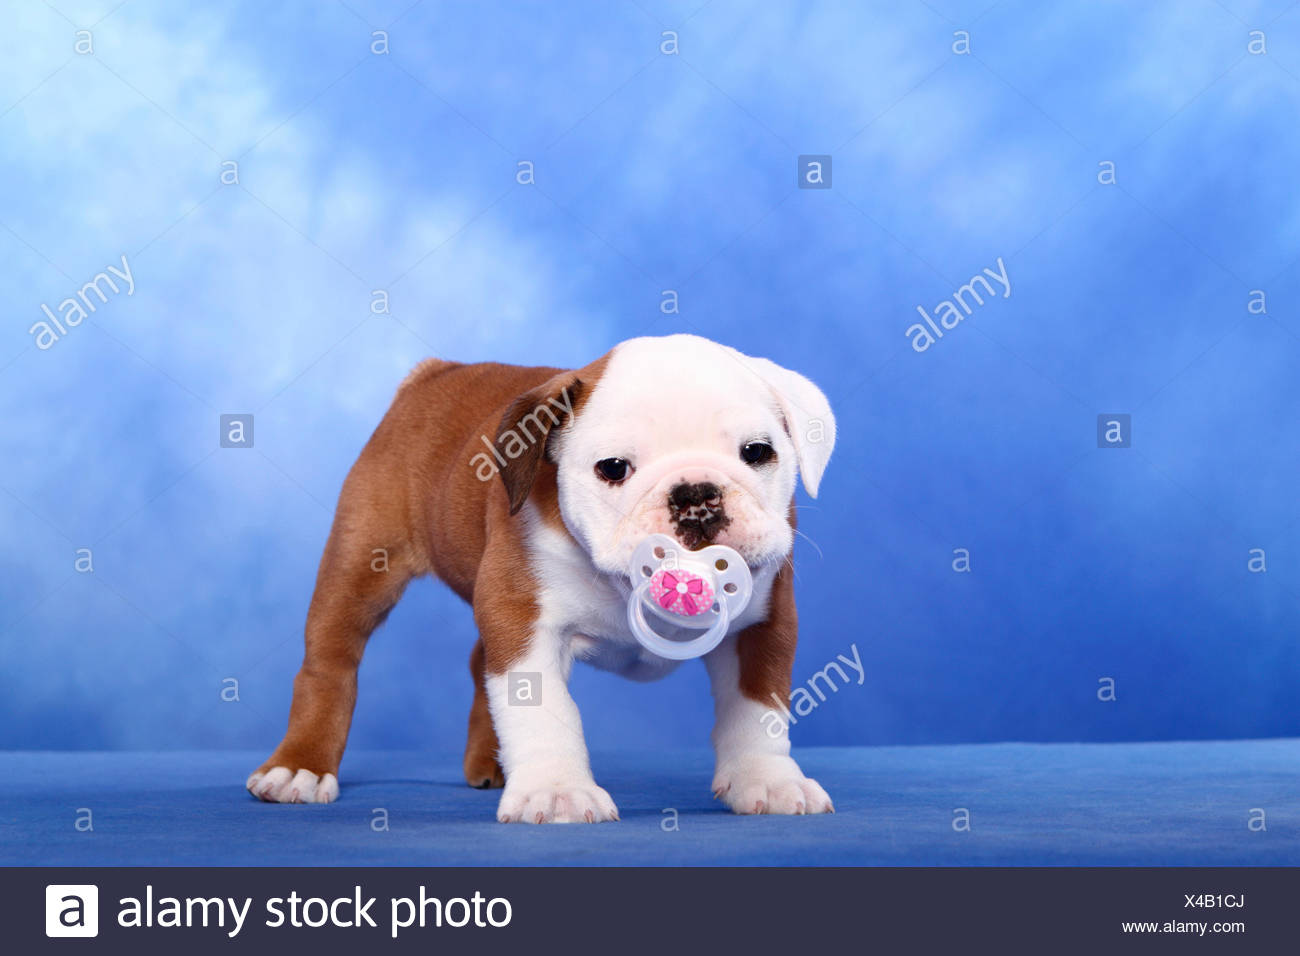 English Bulldog Puppy 7 Weeks Old Standing With A Baby Soother In Its Mouth Studio Picture Against A Blue Background Germany Stock Photo Alamy